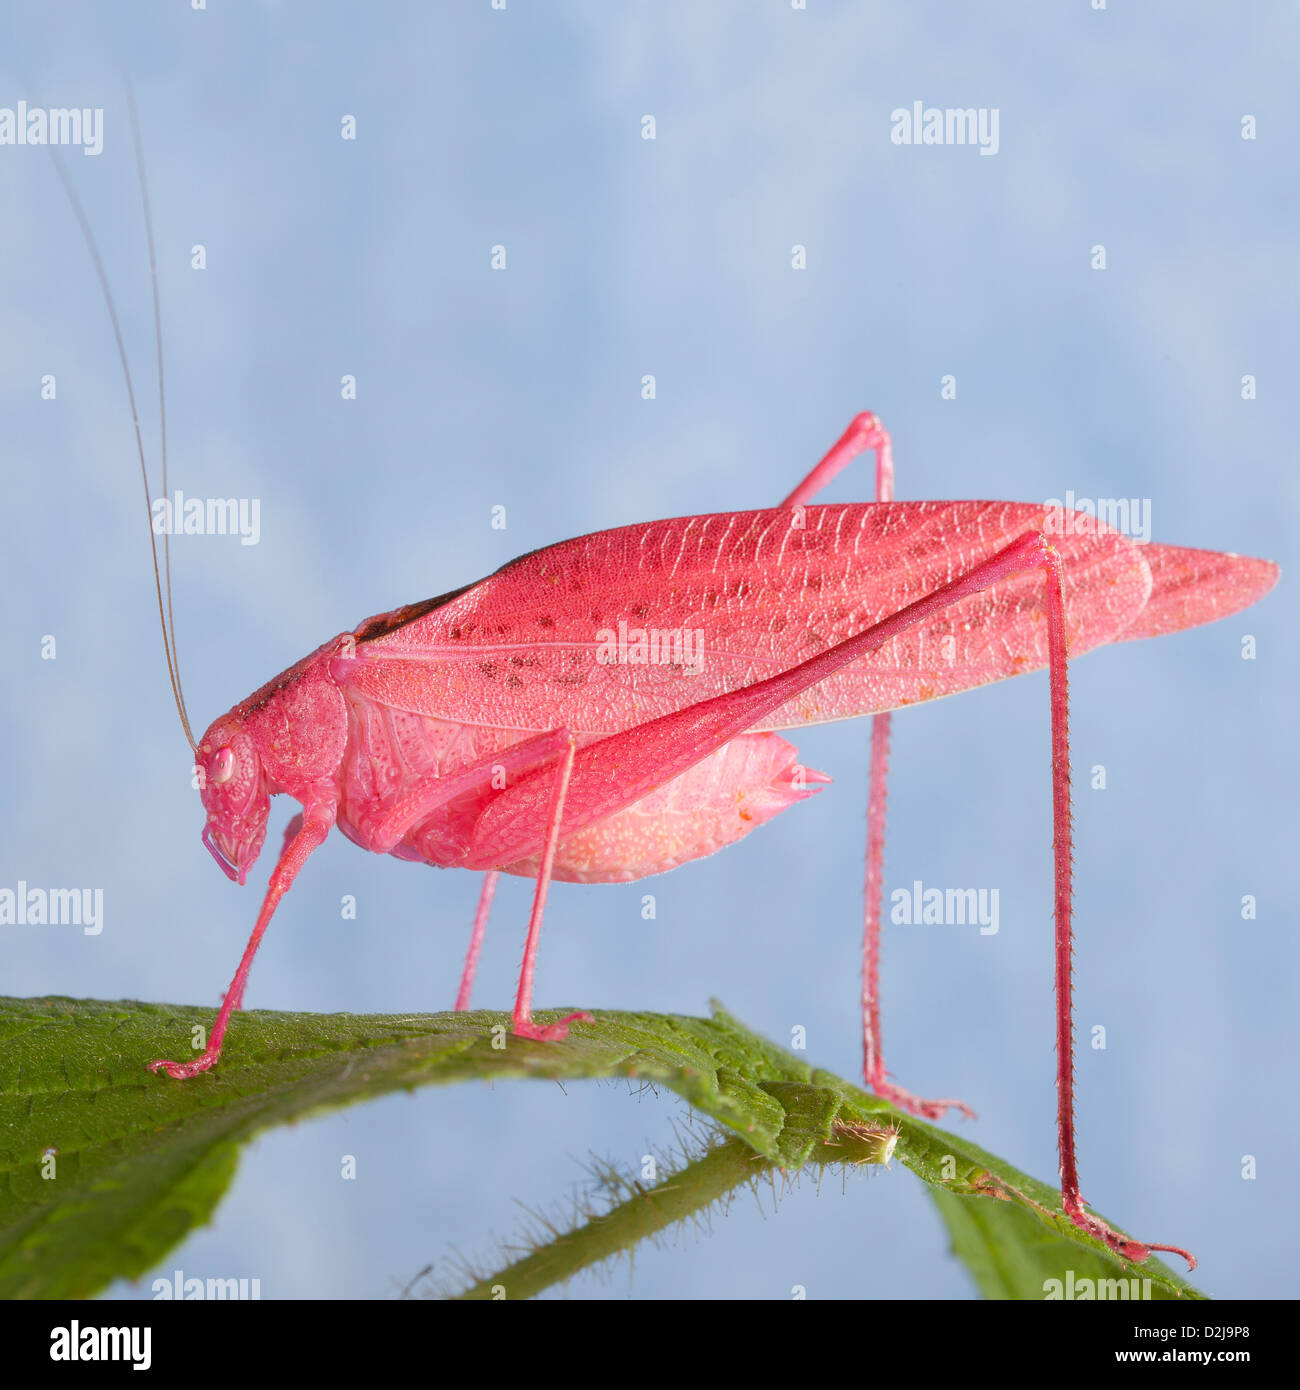 Adult male Oblong-Winged katydid (Amblycorypha oblongifolia), Pink Morph - Stock Image